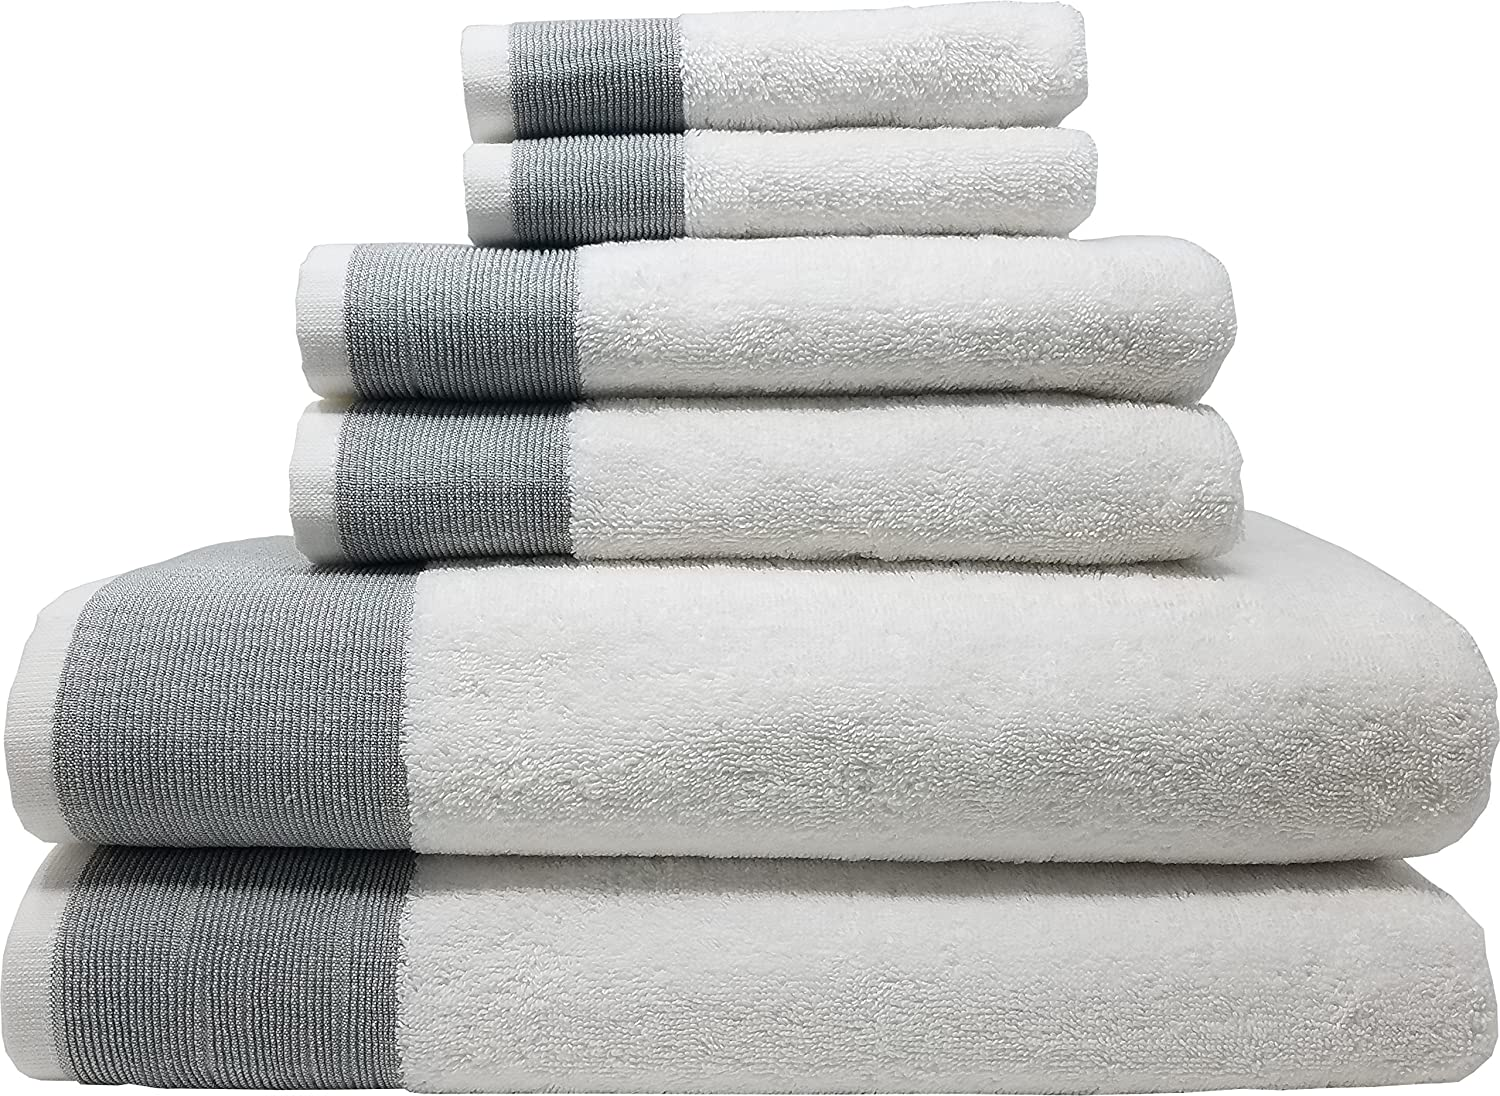 LUNASIDUS Venice Luxury Hotel & Spa Premium 6 pcs Bath Towel Set, 100% Turkish Cotton, Towel Sets, White Towel with Silver Stripe